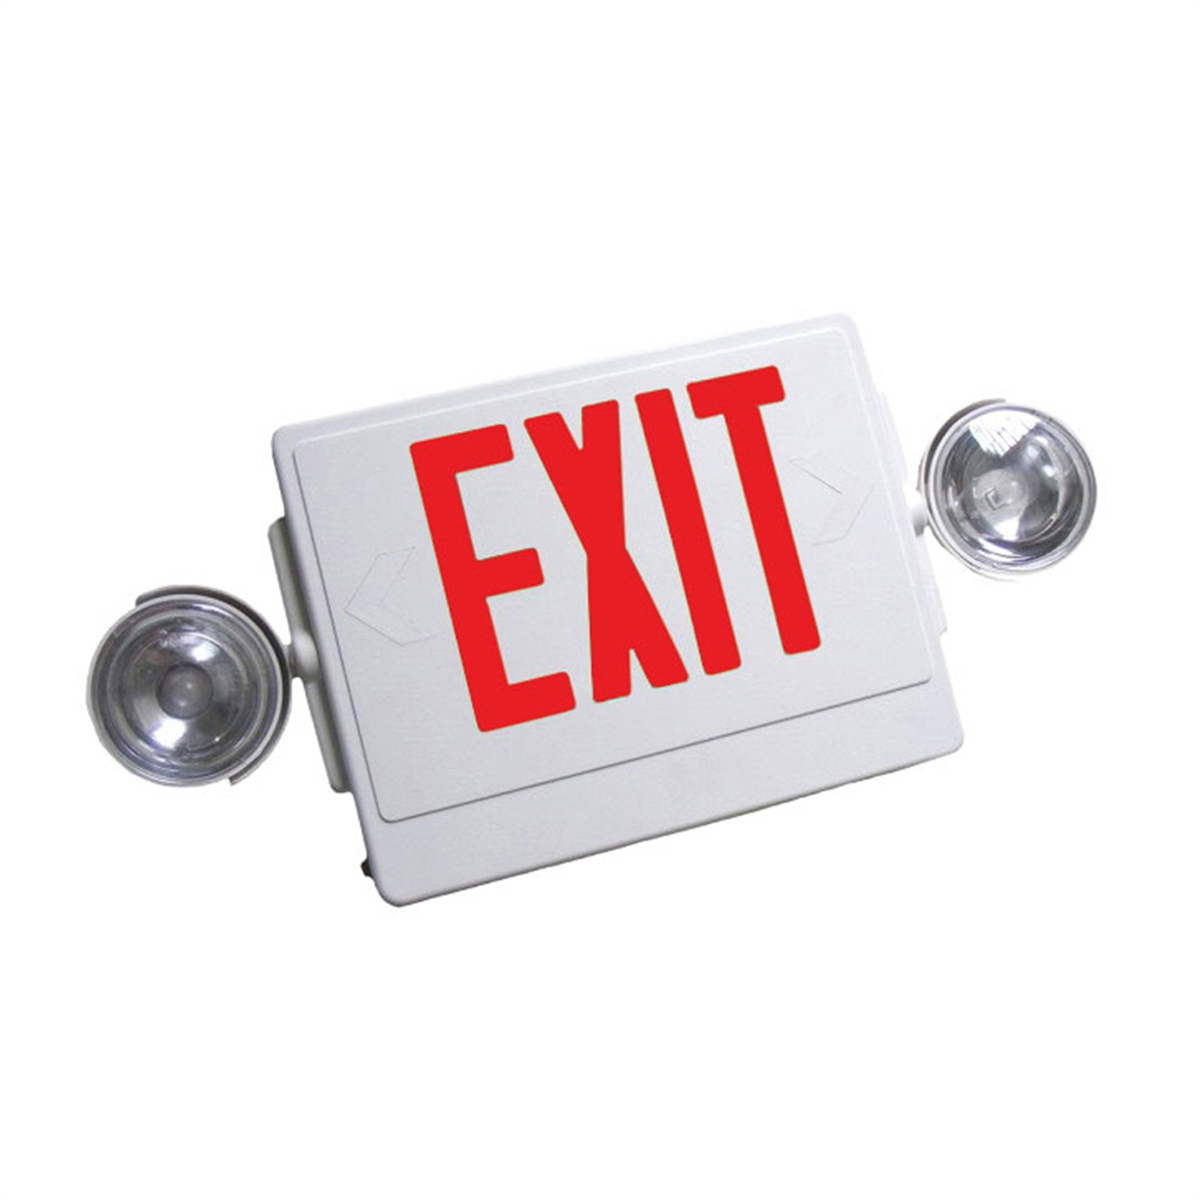 NICOR 18201 Thermoplastic LED Exit Sign Combo with Emergency Lights View  Larger Photo